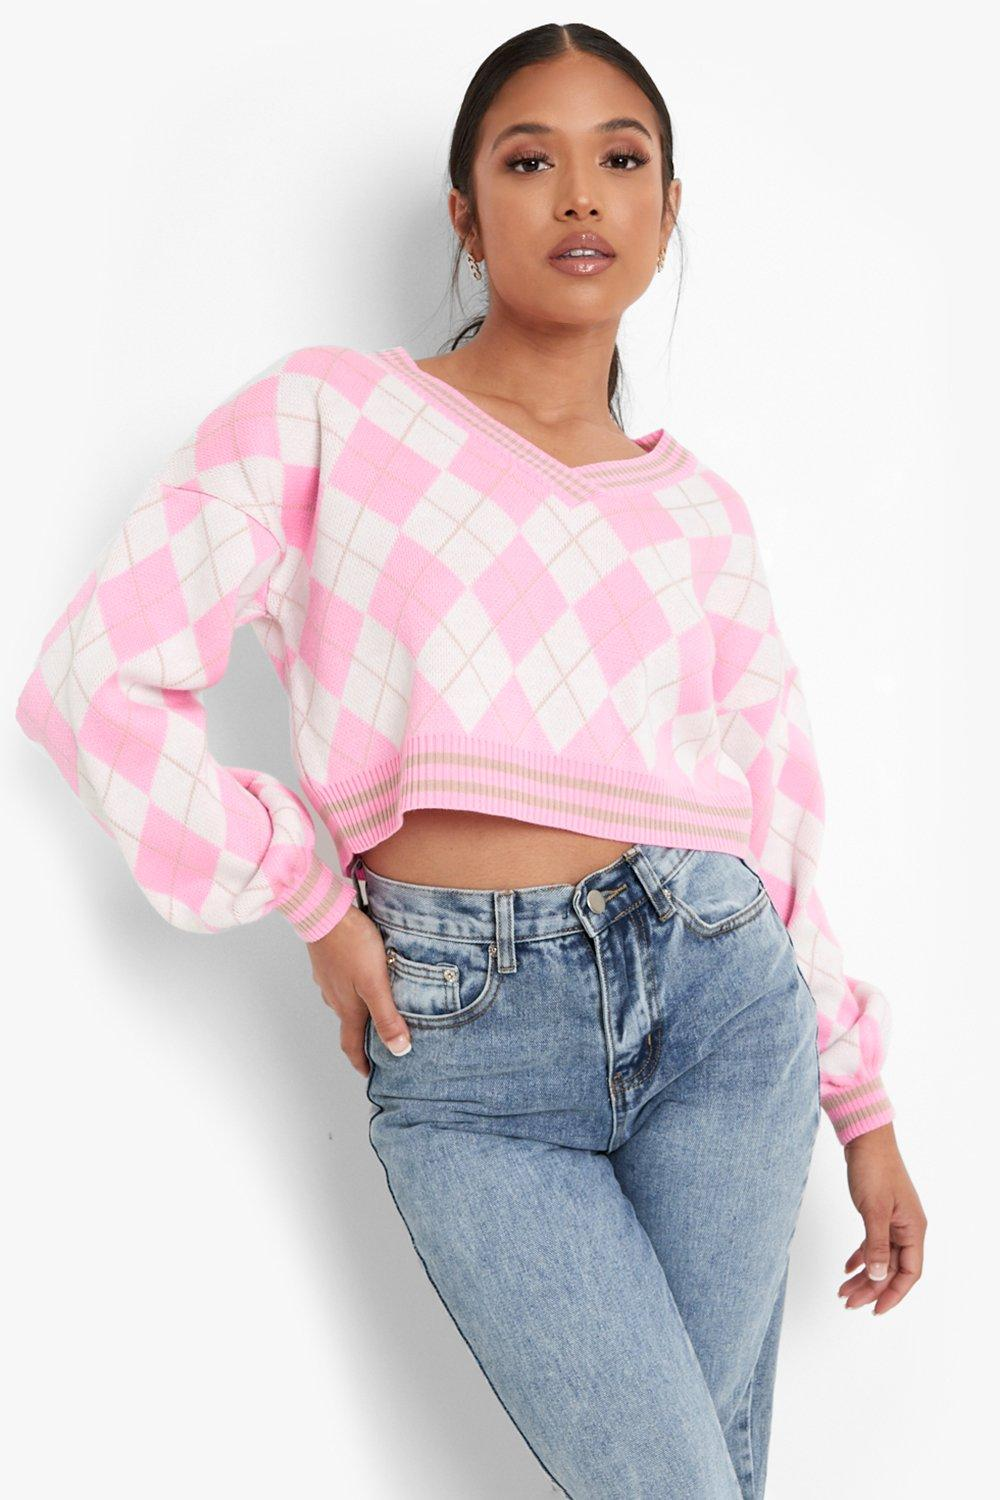 Vintage Sweaters, Retro Sweaters & Cardigan Womens Petite Argyle Knitted V Neck Sweater - Pink - 12 $16.00 AT vintagedancer.com